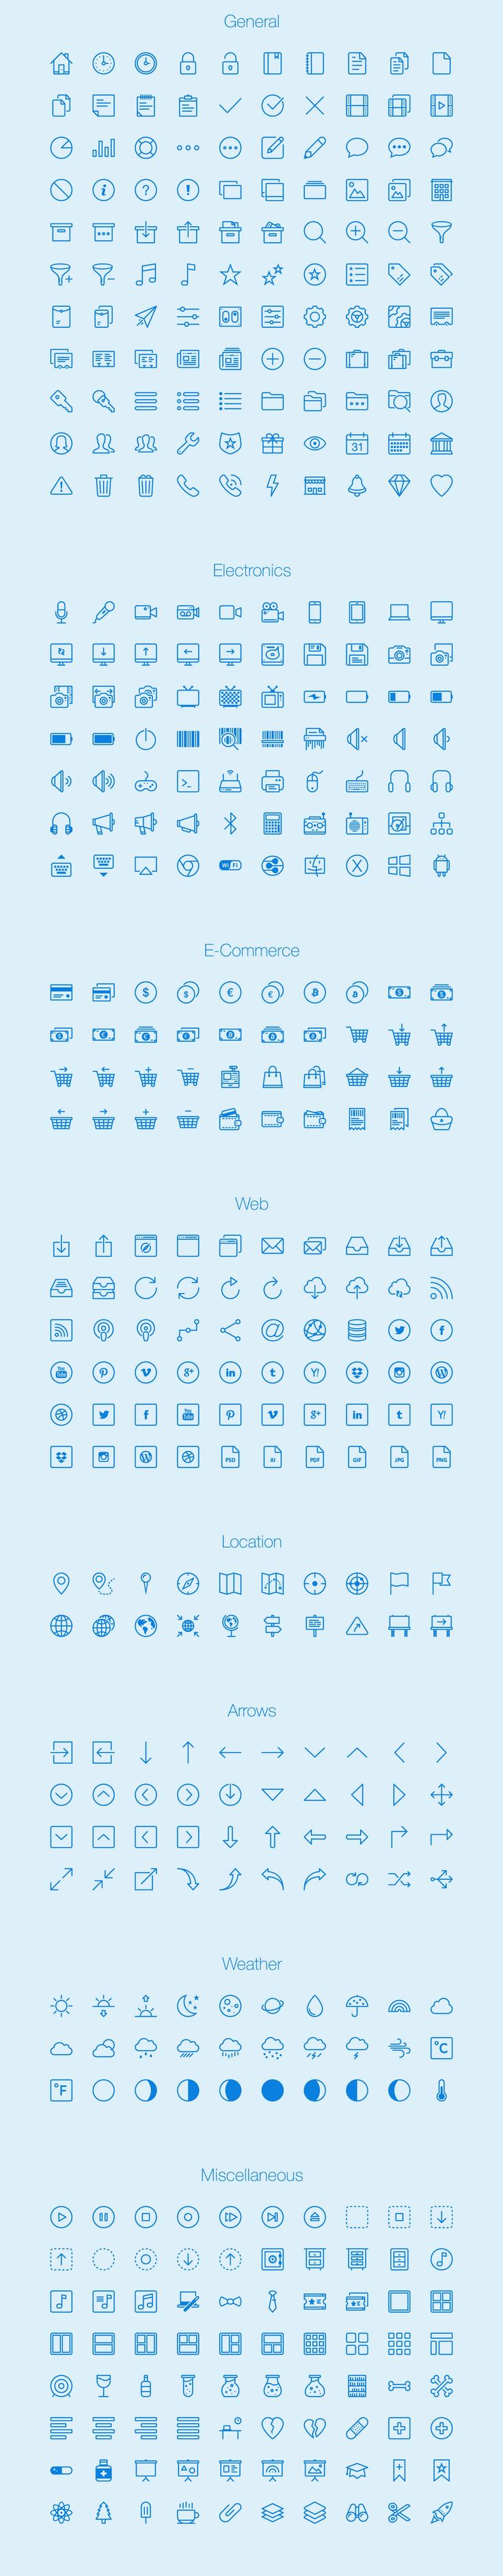 Free download: 450 outline icons | Webdesigner Depot